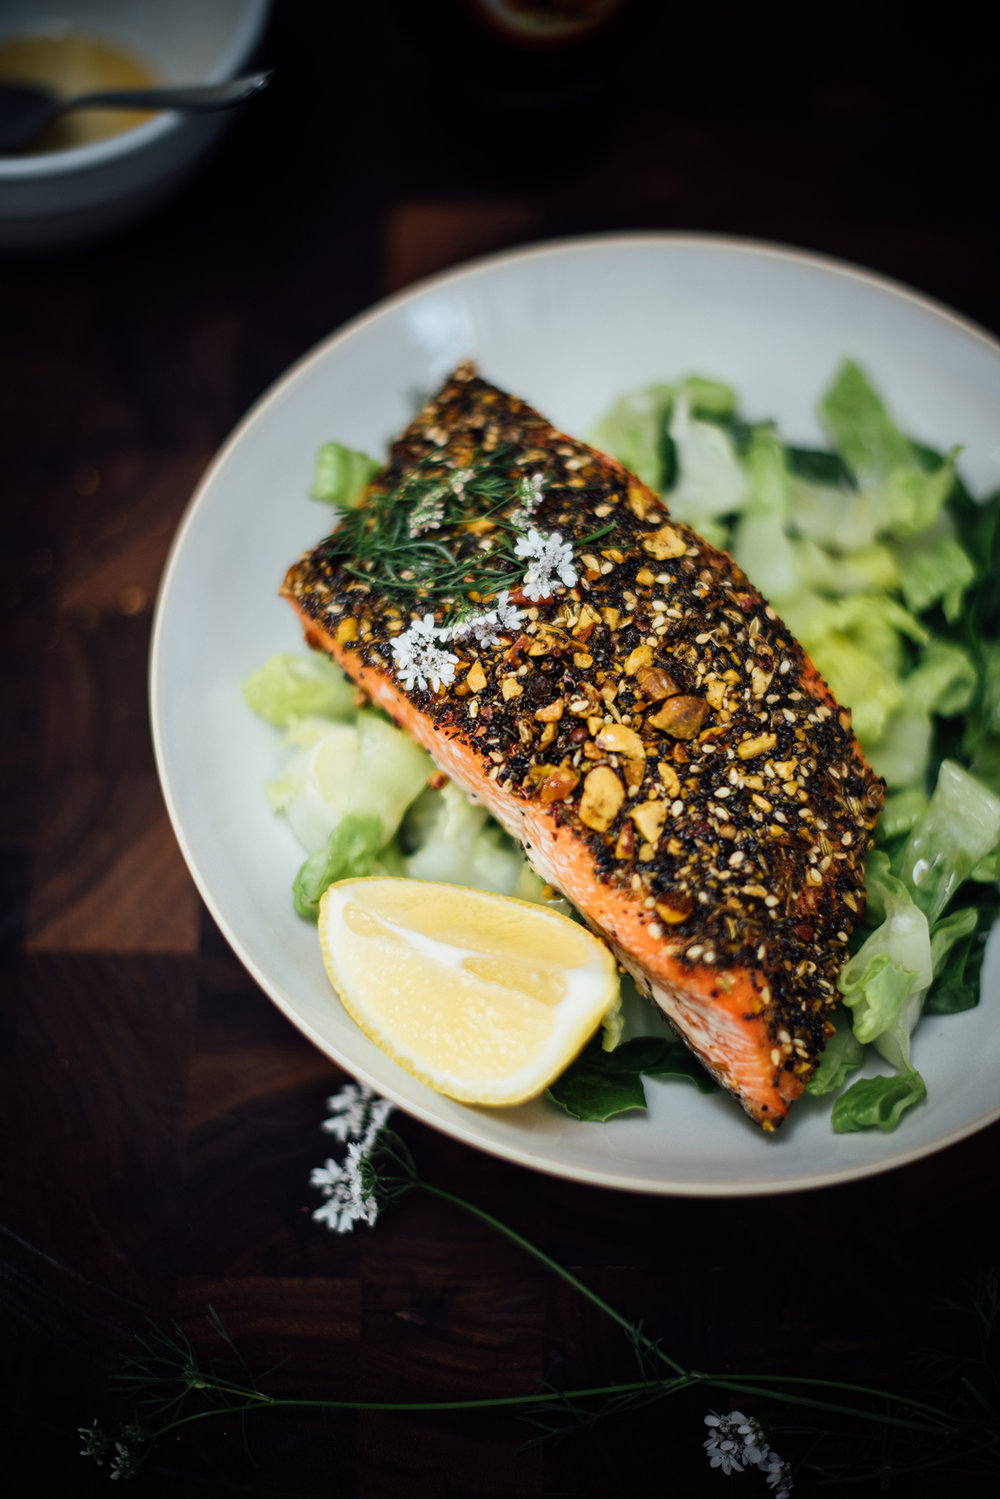 dukkah seasoned salmon| Nik Sharma